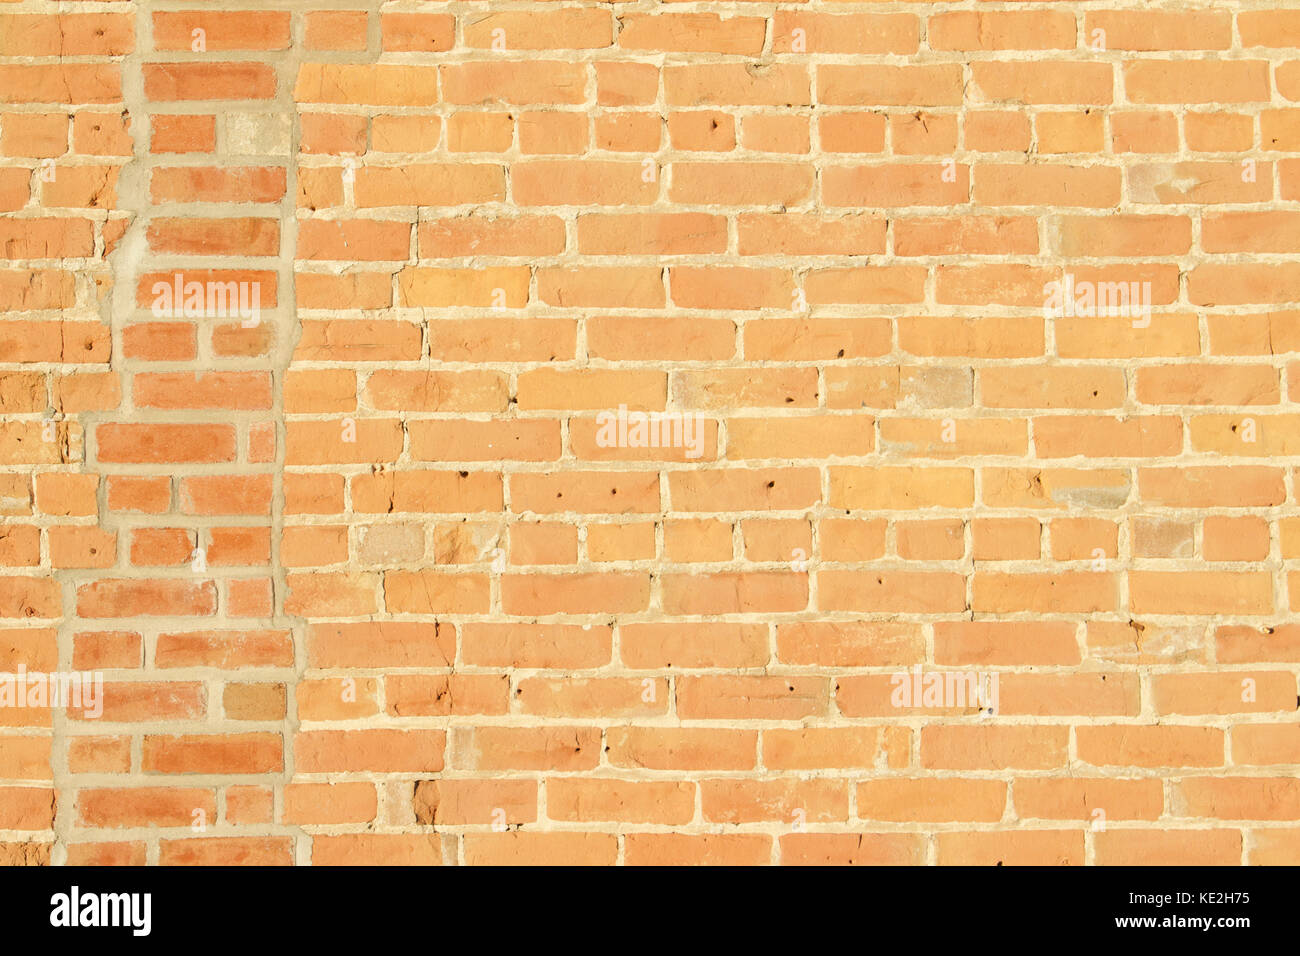 Shabby Chic Old Clay Brick Wall Background - Stock Image